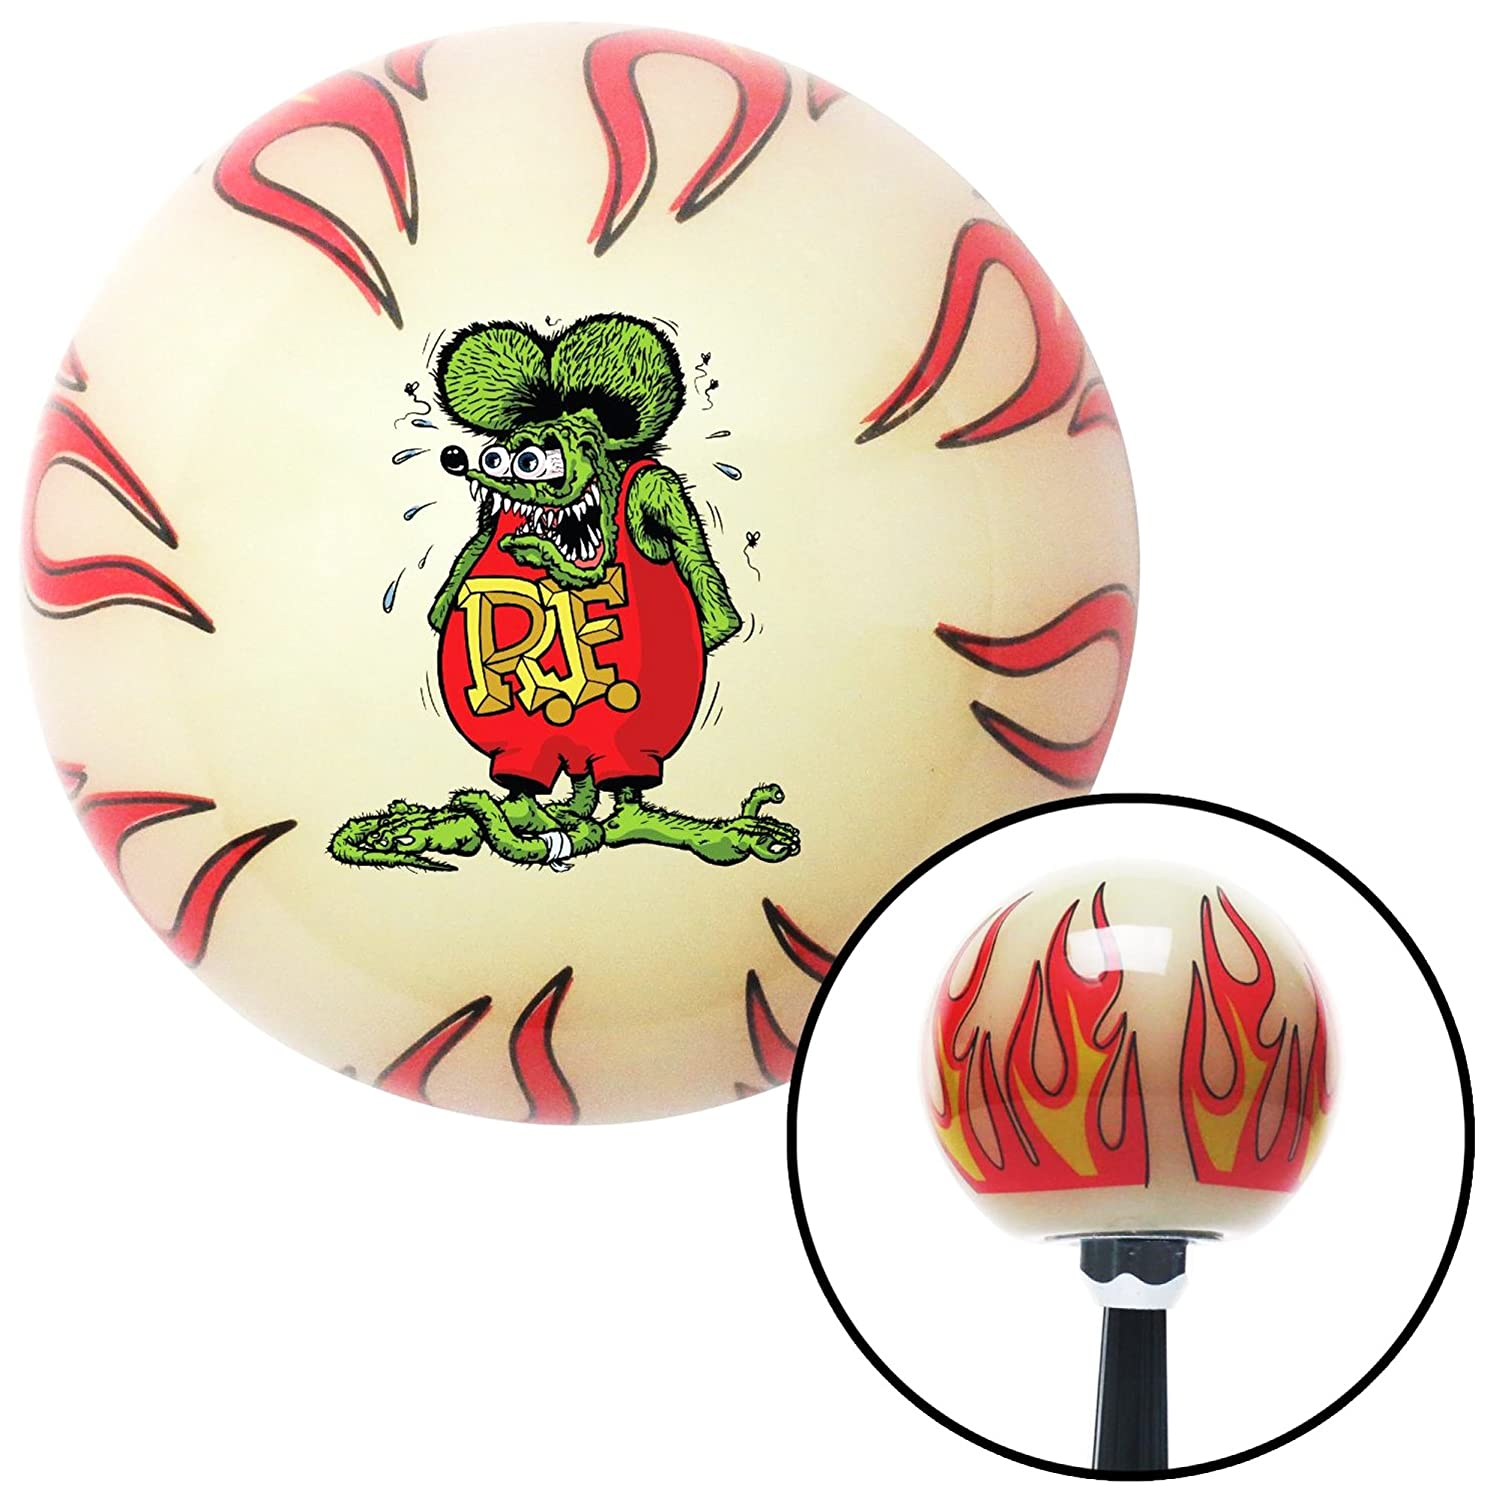 American Shifter 327577 Rat Fink Ivory Flame Shift Knob with M16 x 1.5 Insert